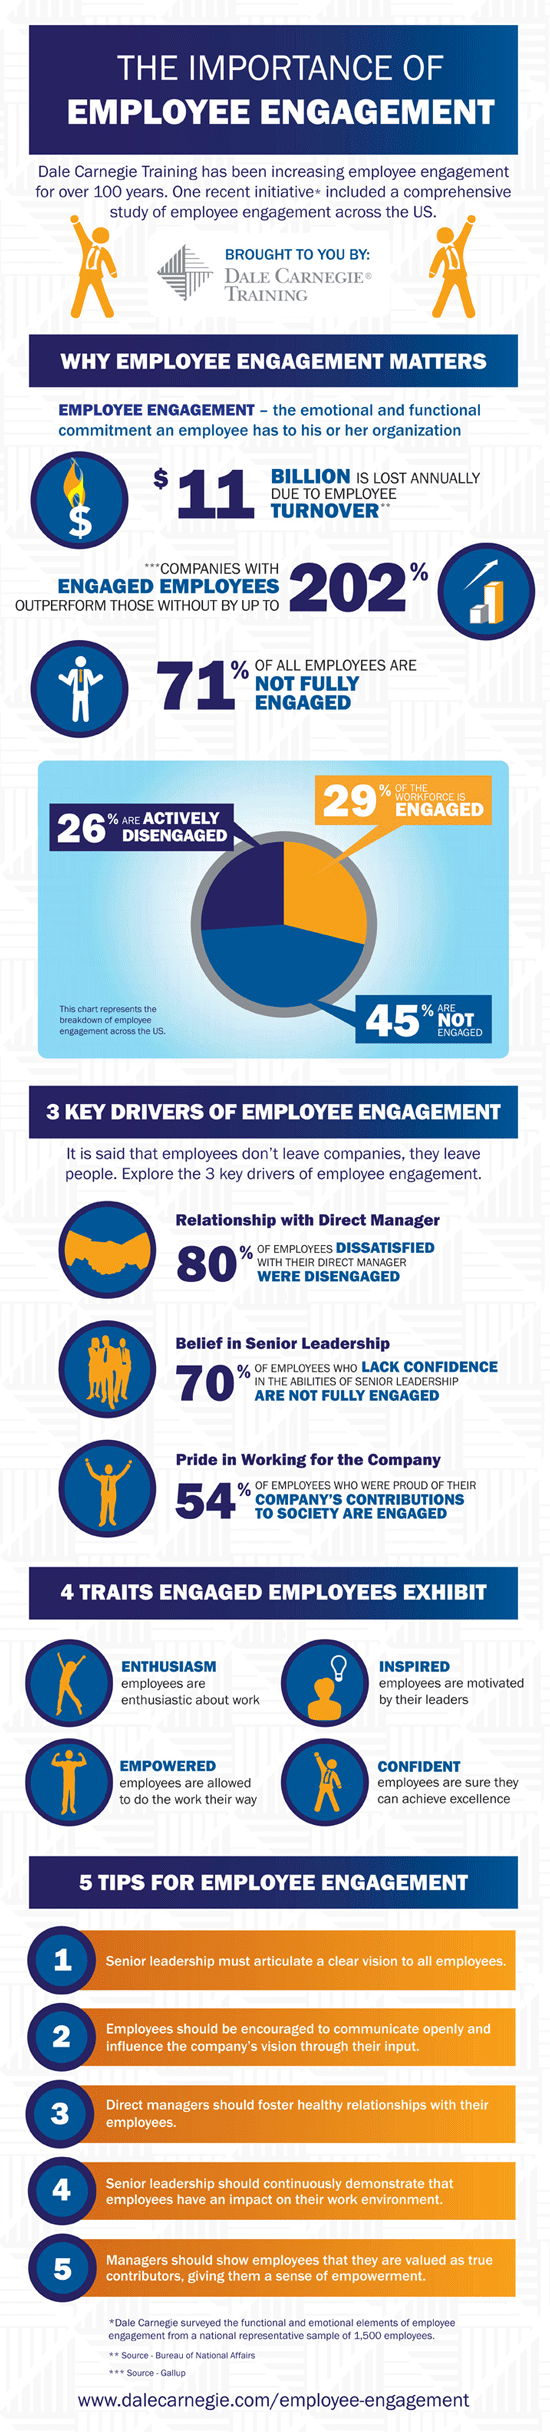 The Importance of Employee Engagement